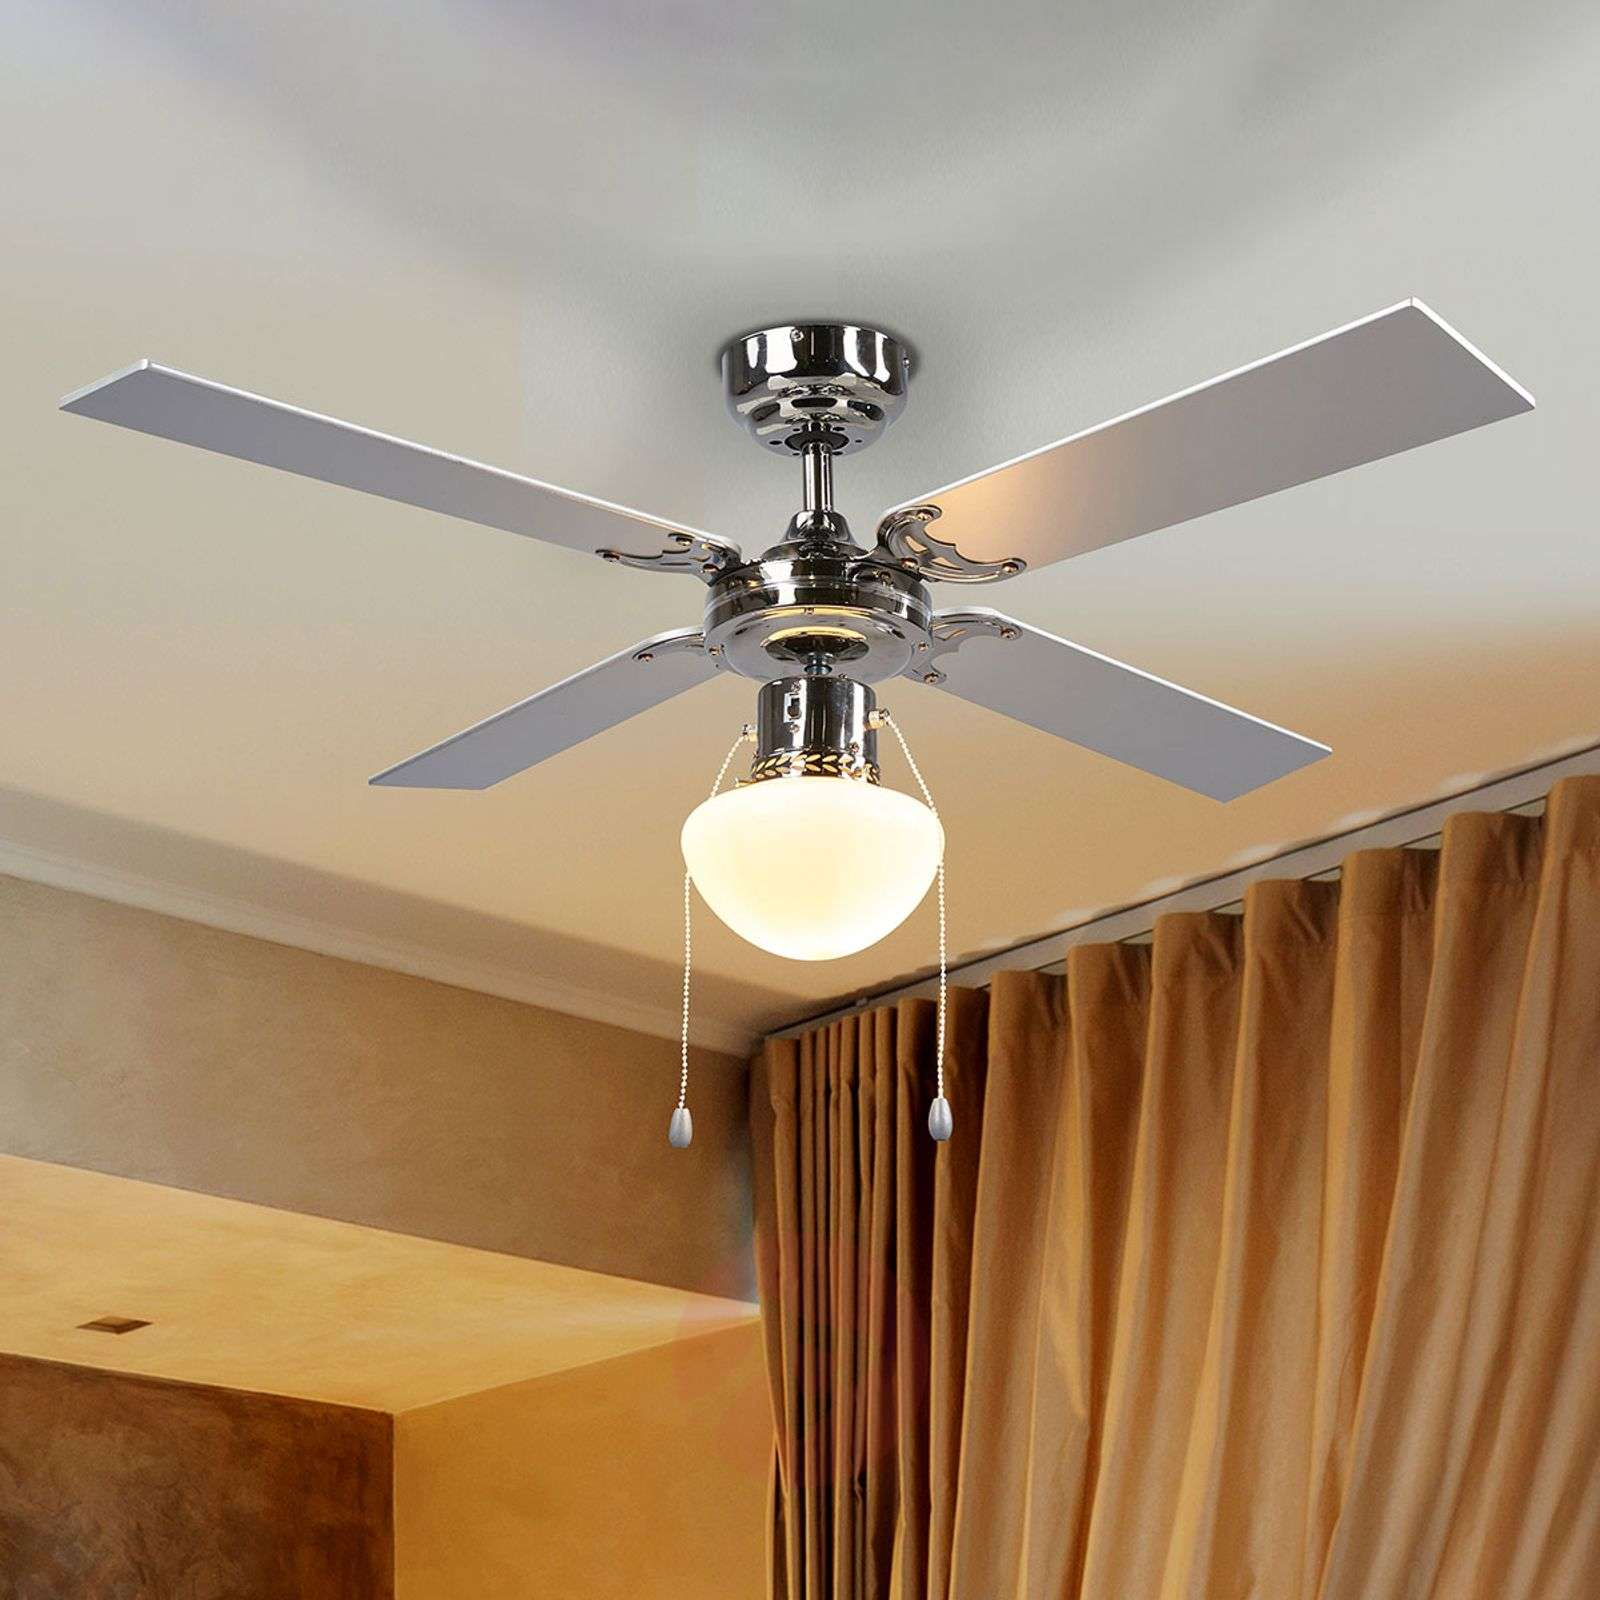 Milana ceiling fan with light, E27_4018101_1